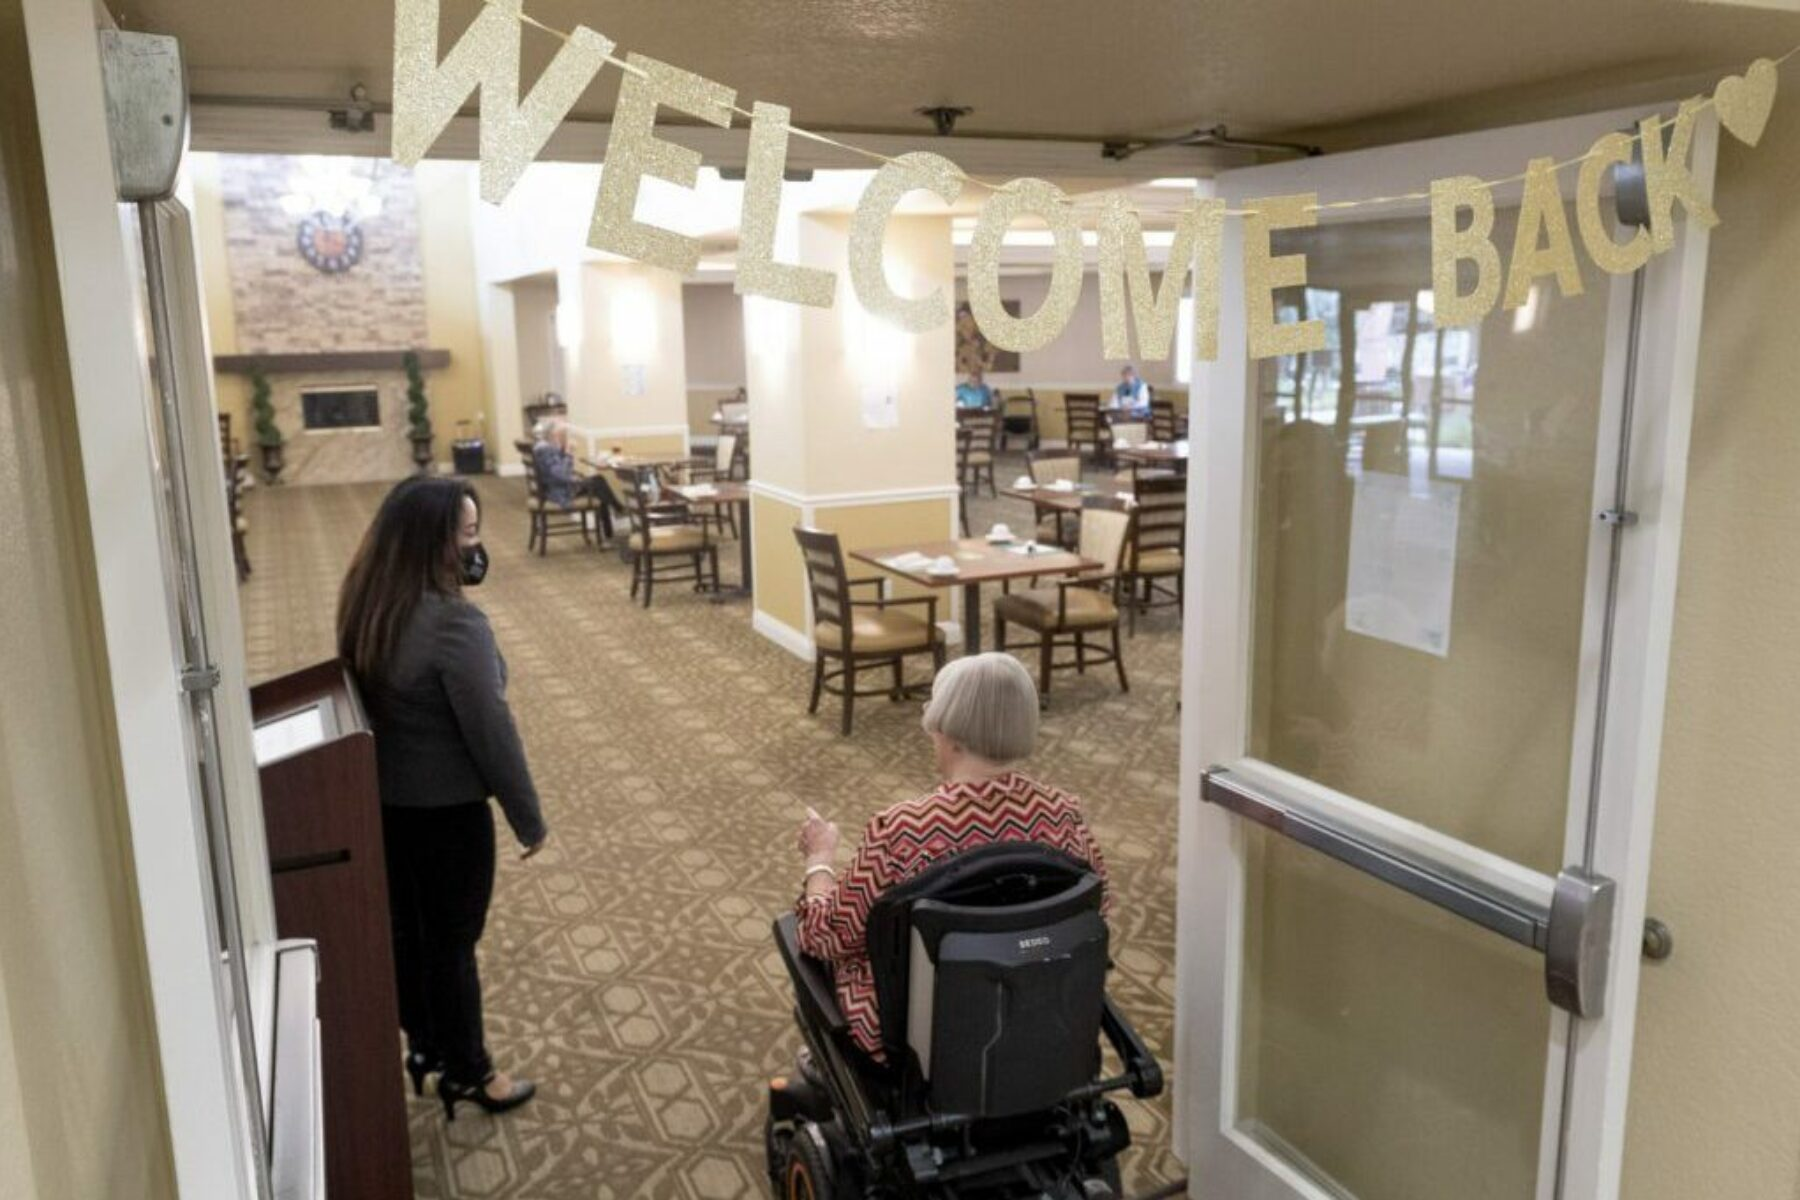 A woman enters the dining room of a nursing home